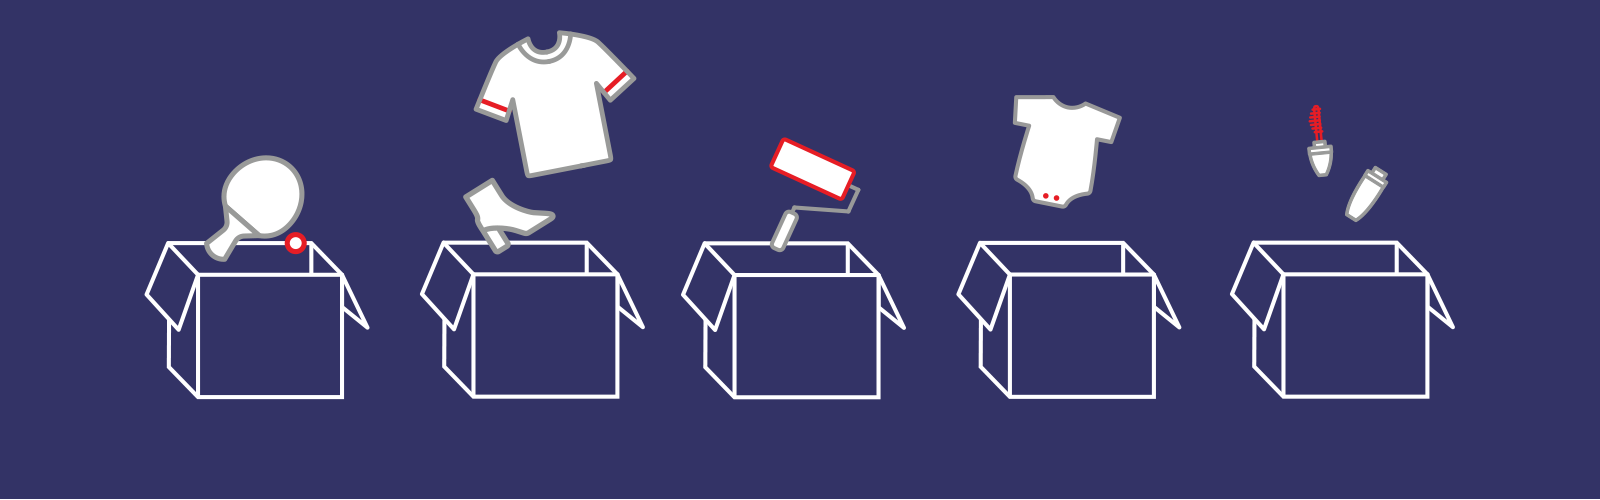 Illustration of five shipping boxes and various products including high heels and a baby onesie.